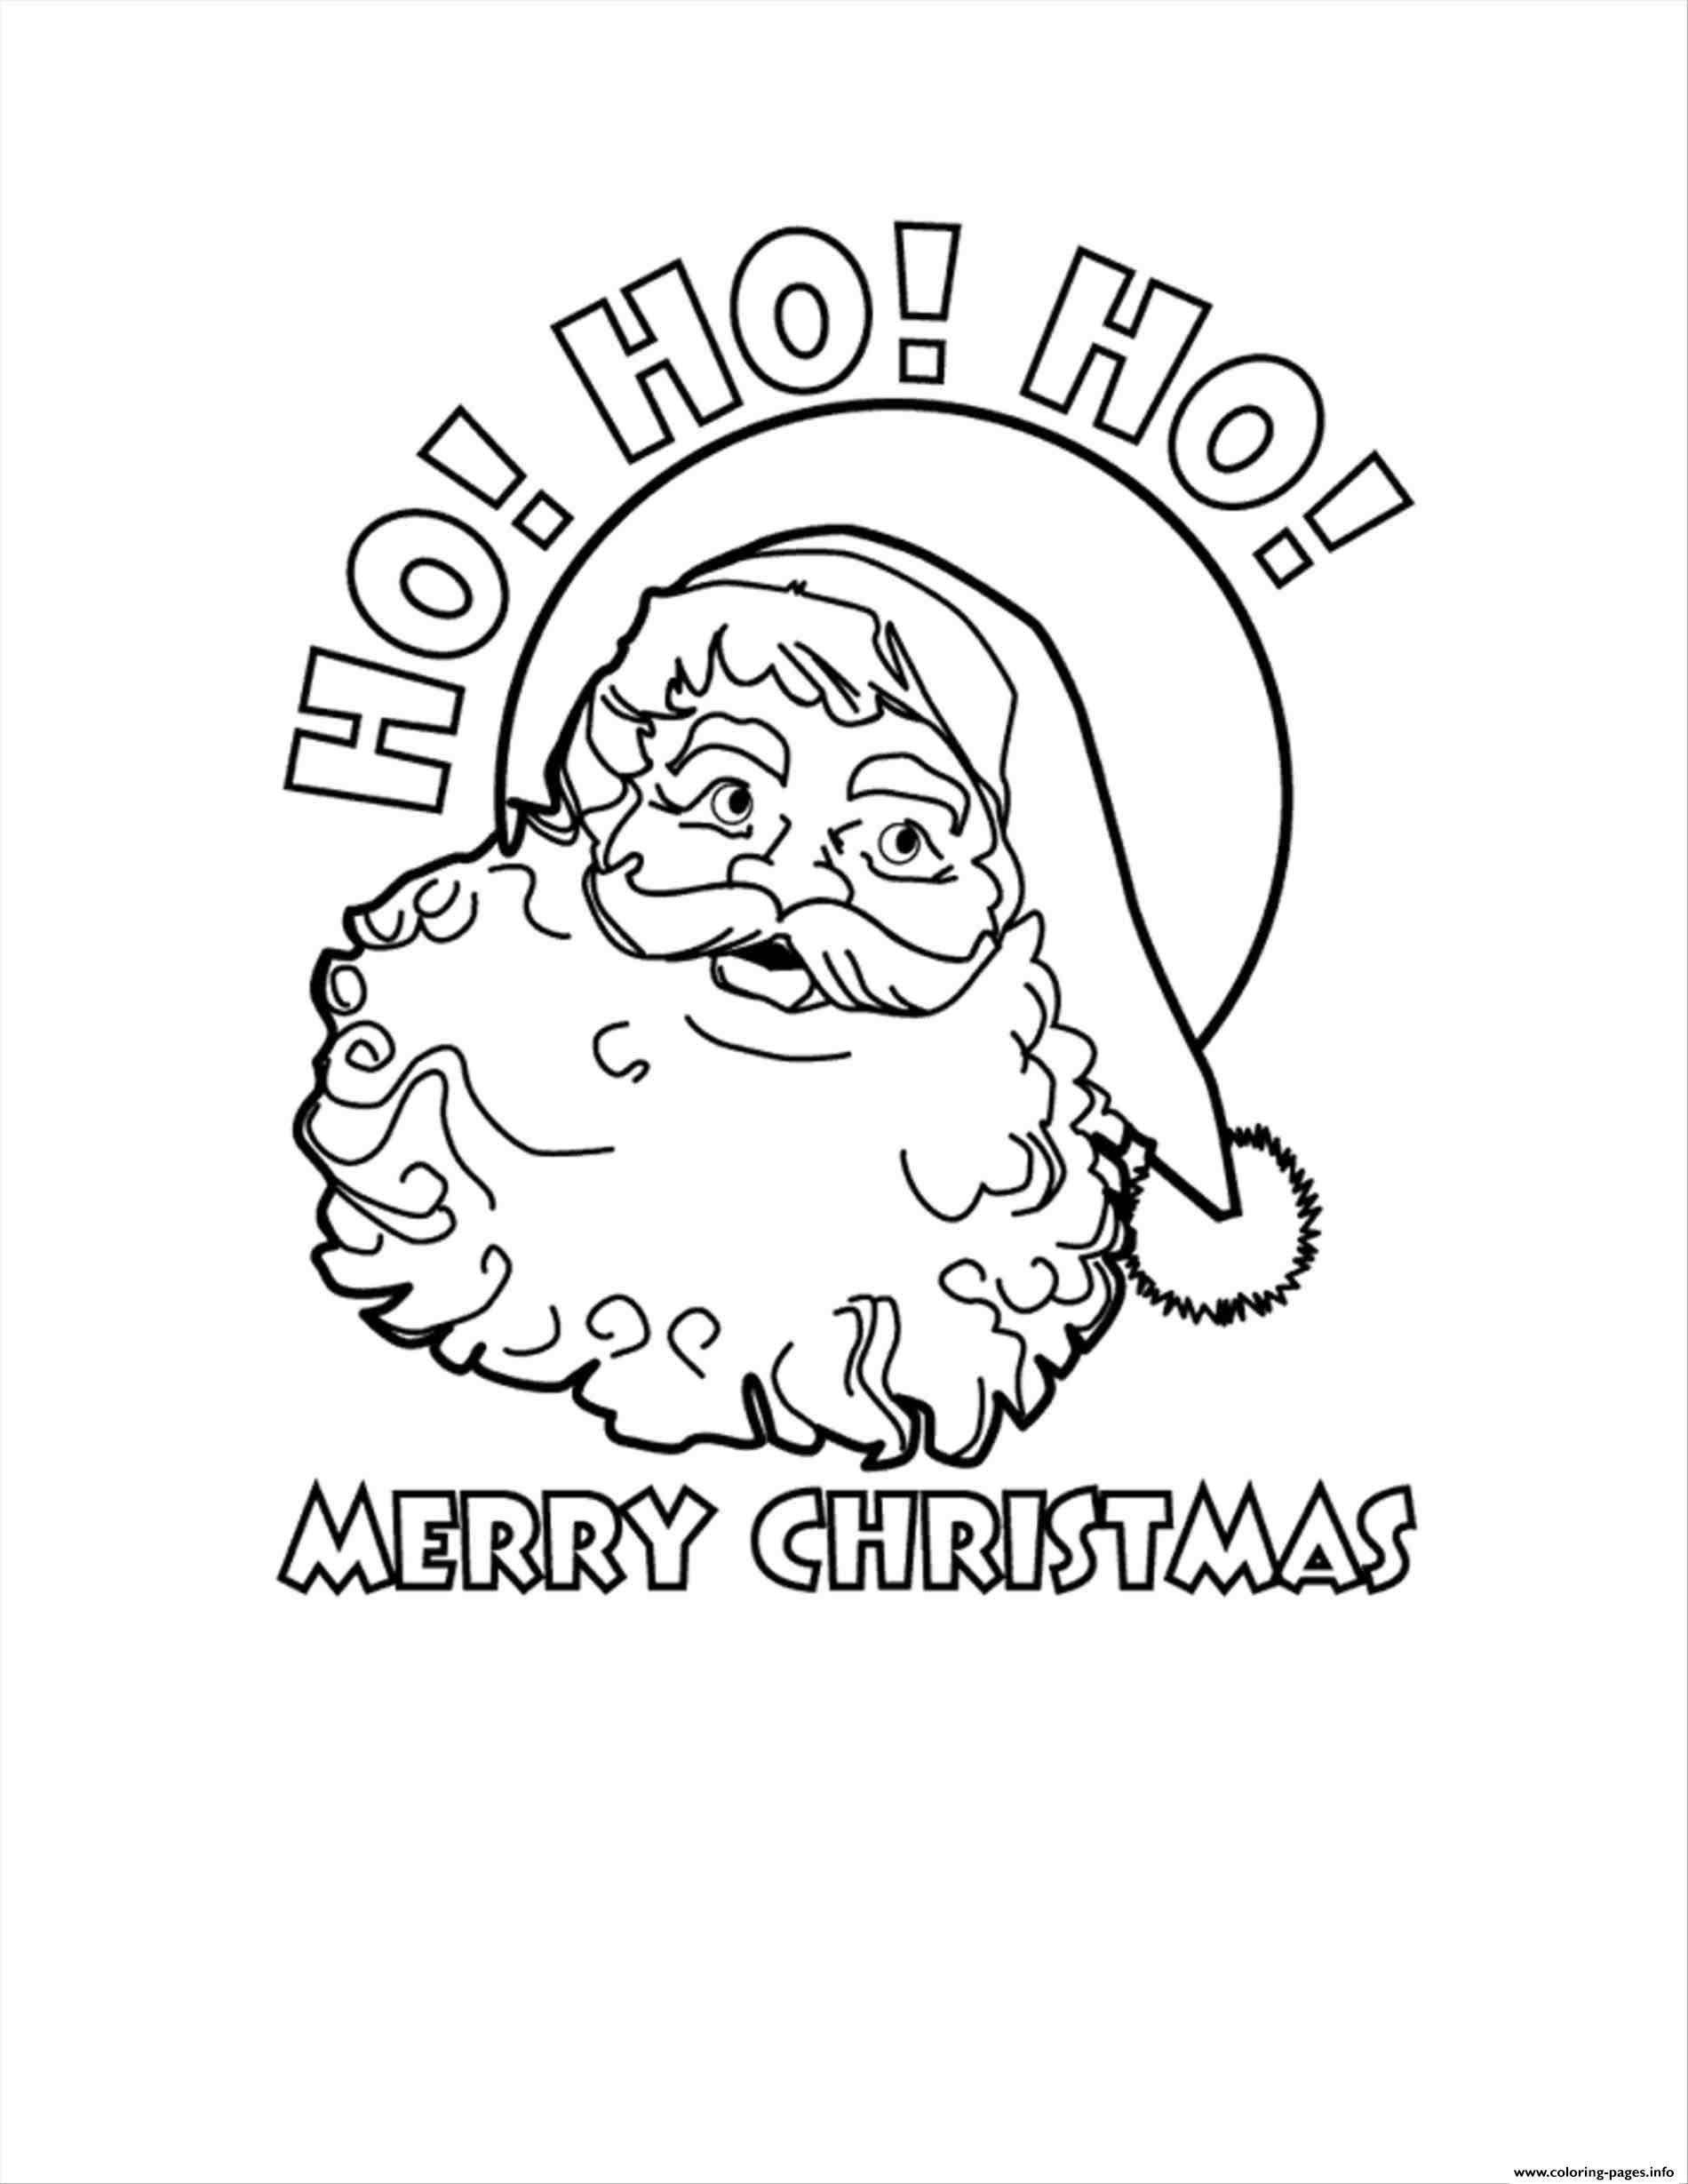 Merry Christmas Coloring Pages Print With Santa Claus Ho Printable